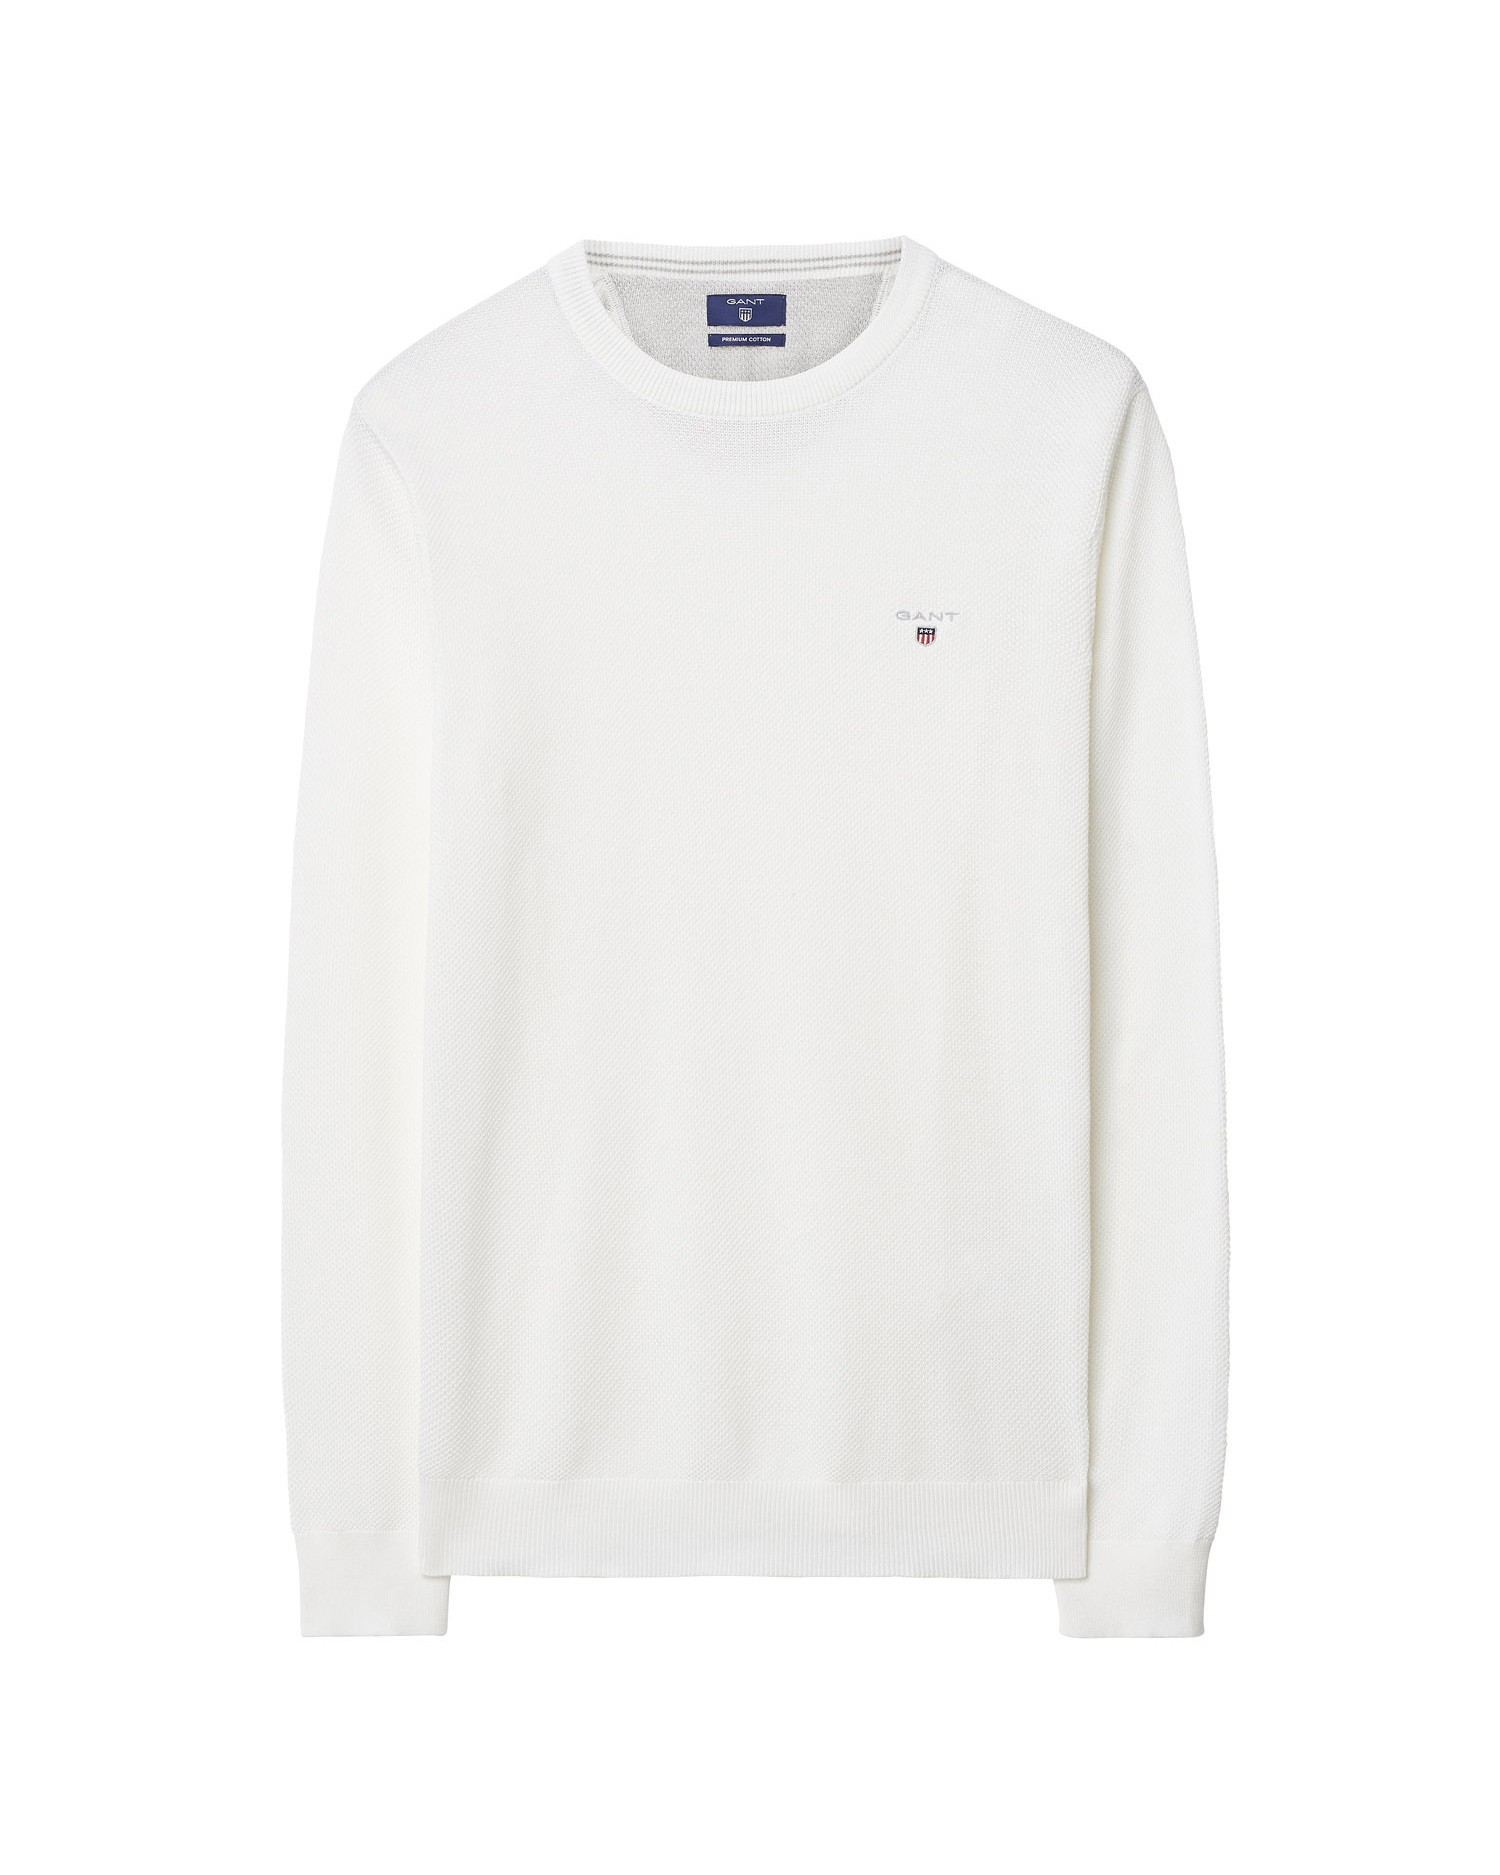 GANT Men's Cotton Pique Crew Sweater - 80021